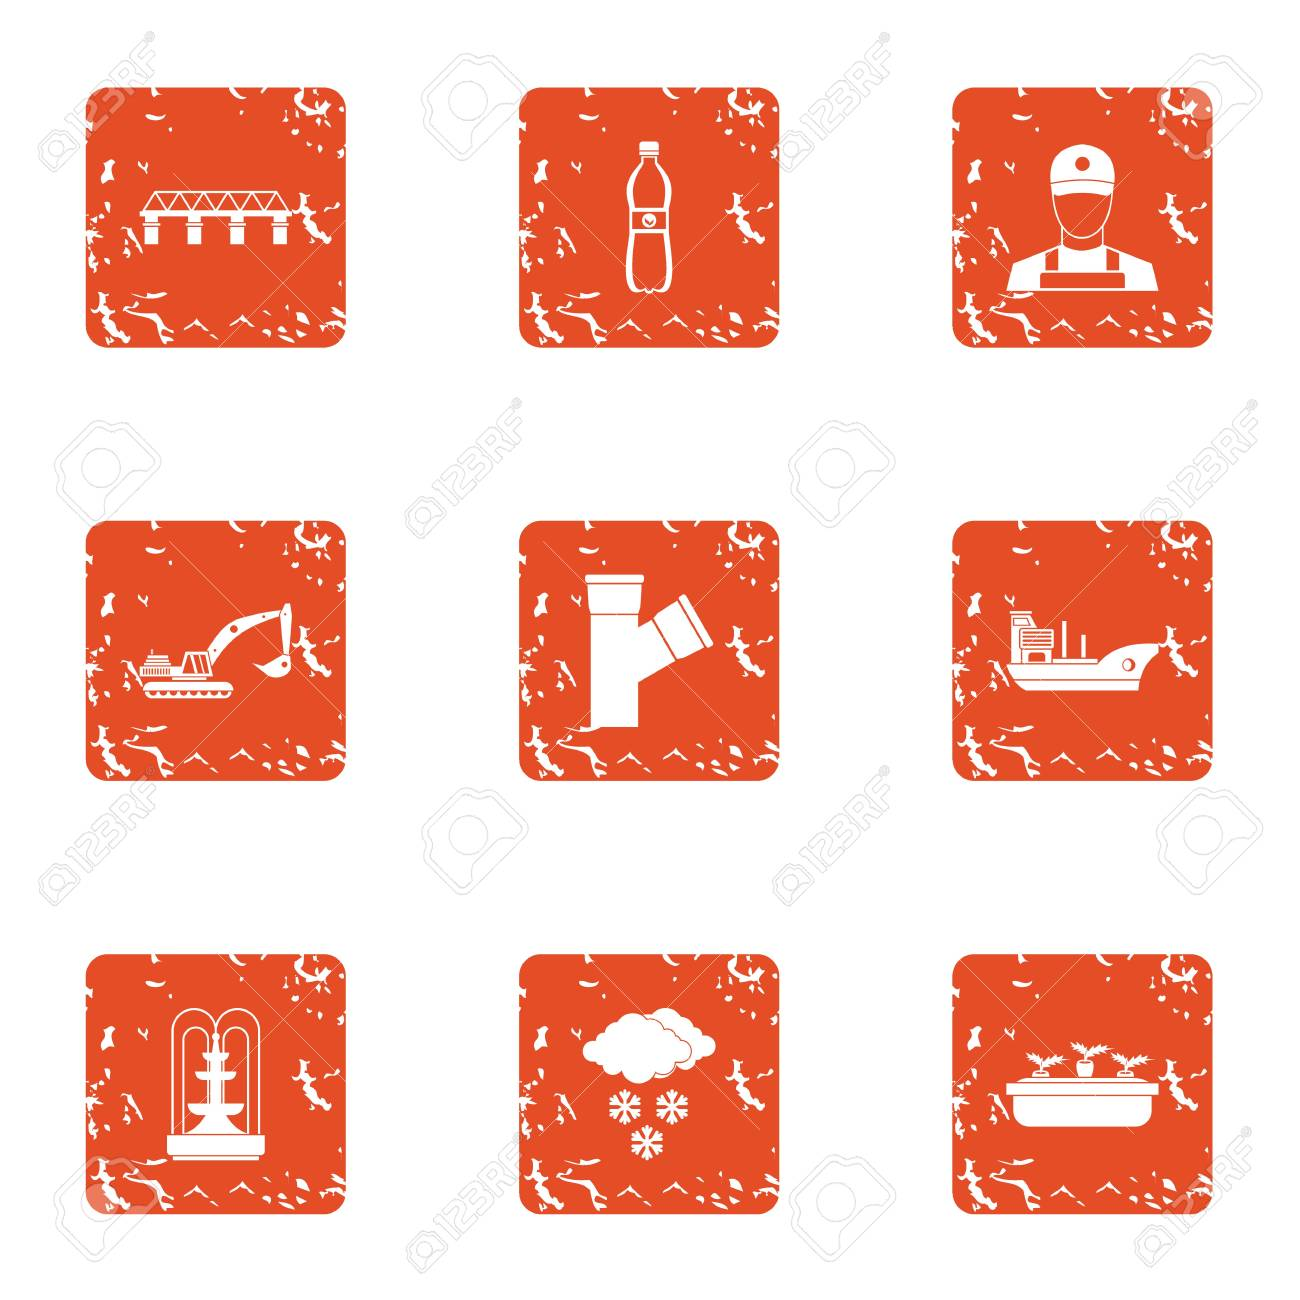 Bring water icons set. Grunge set of 9 bring water vector icons for web isolated on white background - 112301477